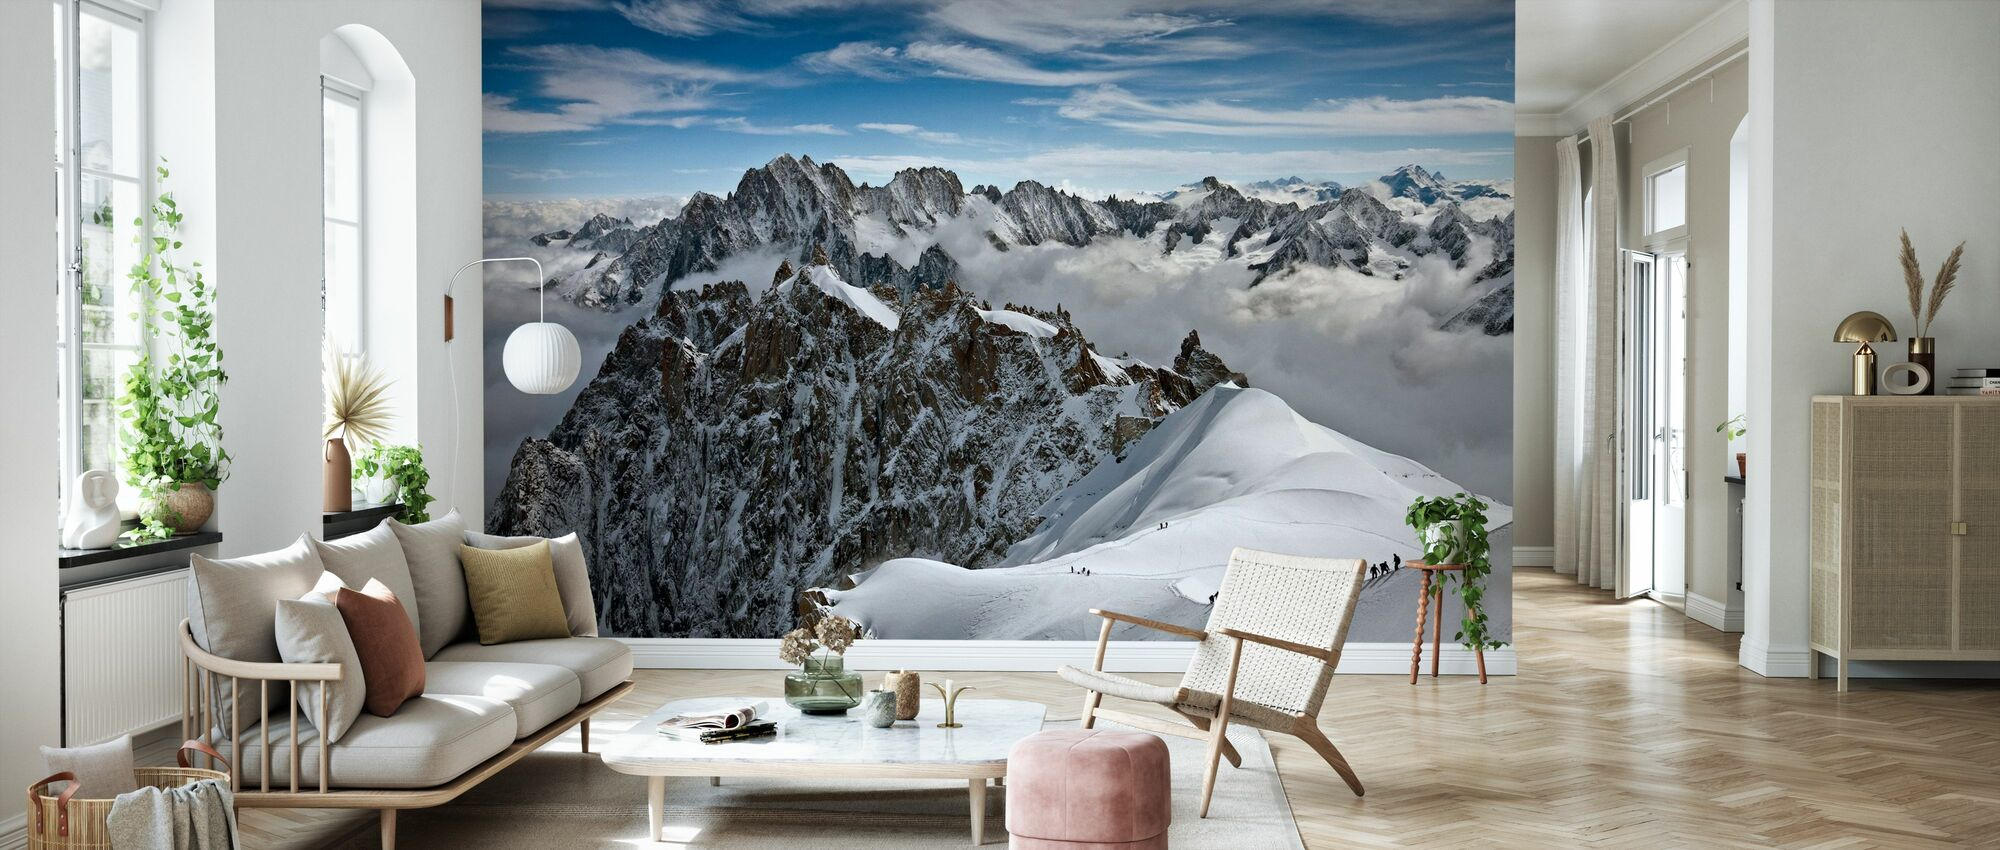 View of overlooking Alps - Wallpaper - Living Room